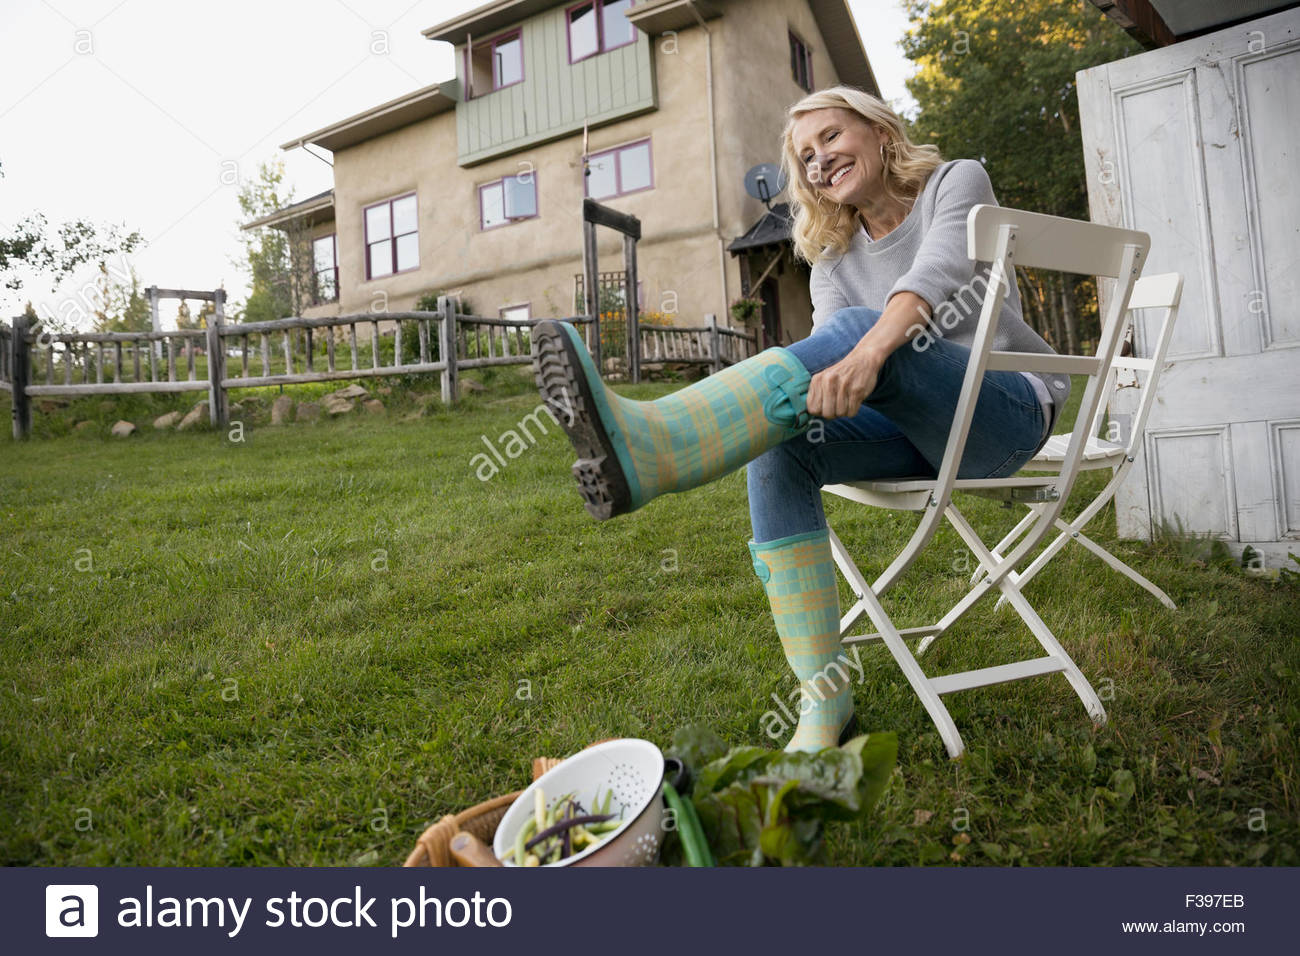 Smiling woman putting on wellies in garden - Stock Image